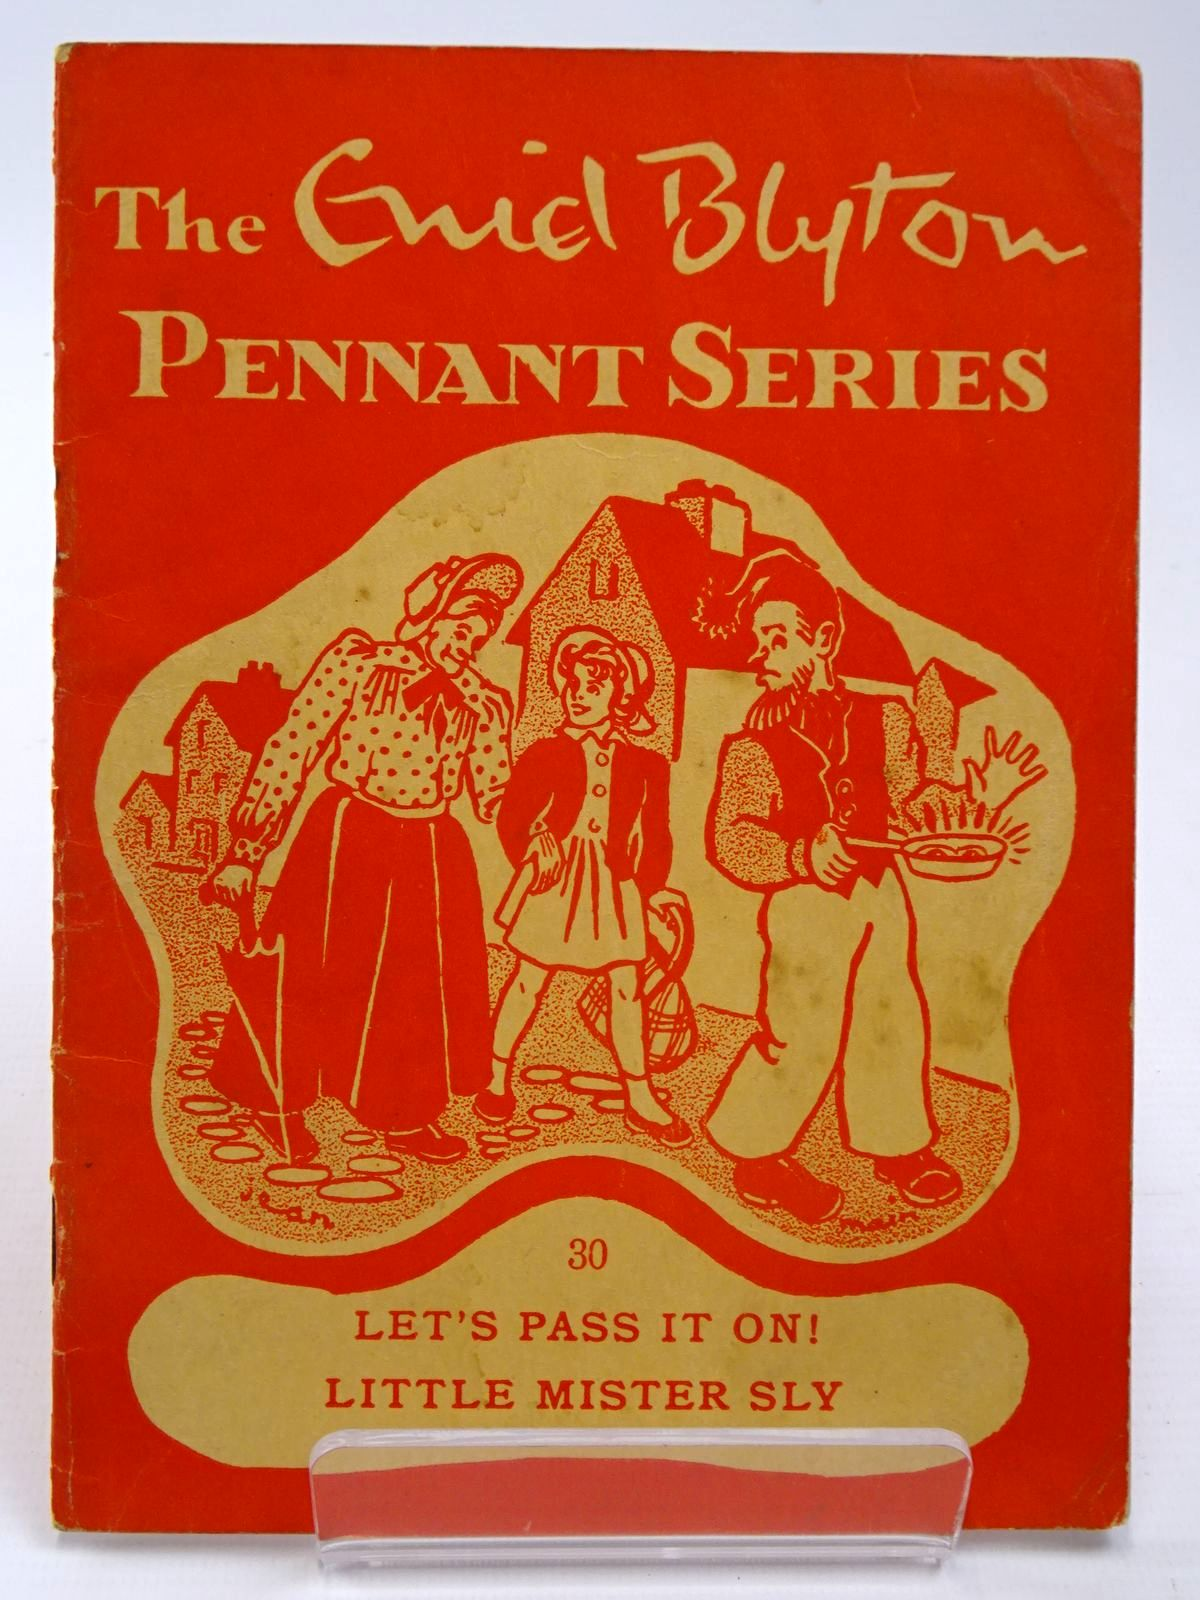 Photo of THE ENID BLYTON PENNANT SERIES No. 30 LET'S PASS IT ON! / LITTLE MISTER SLY written by Blyton, Enid illustrated by Soper, Eileen Main, Jean published by Macmillan & Co. Ltd. (STOCK CODE: 2130525)  for sale by Stella & Rose's Books